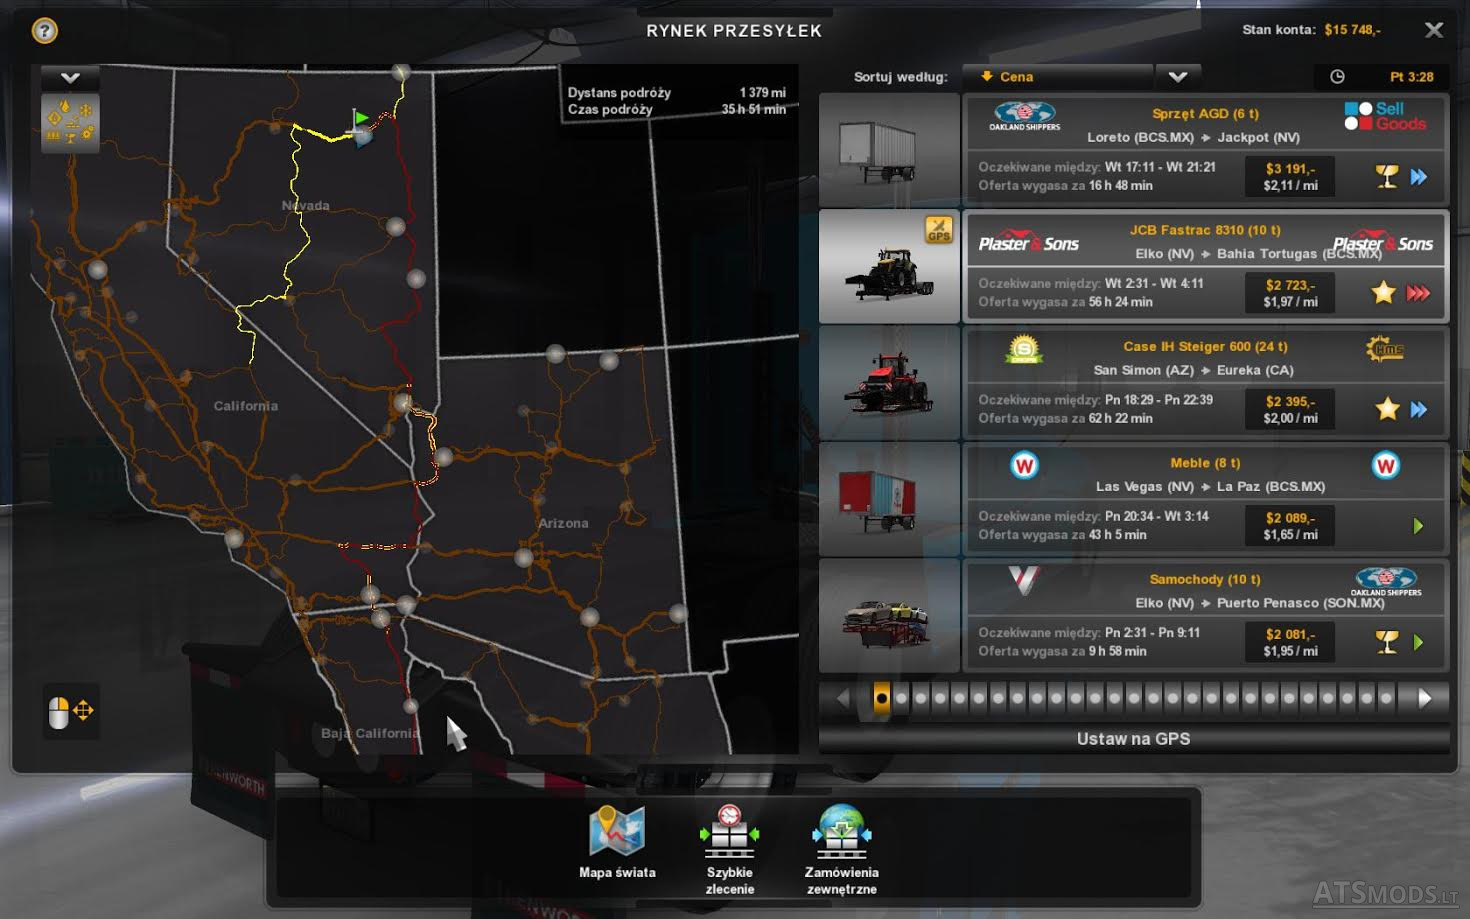 The new color of the road on the advisers and on the map ATS +